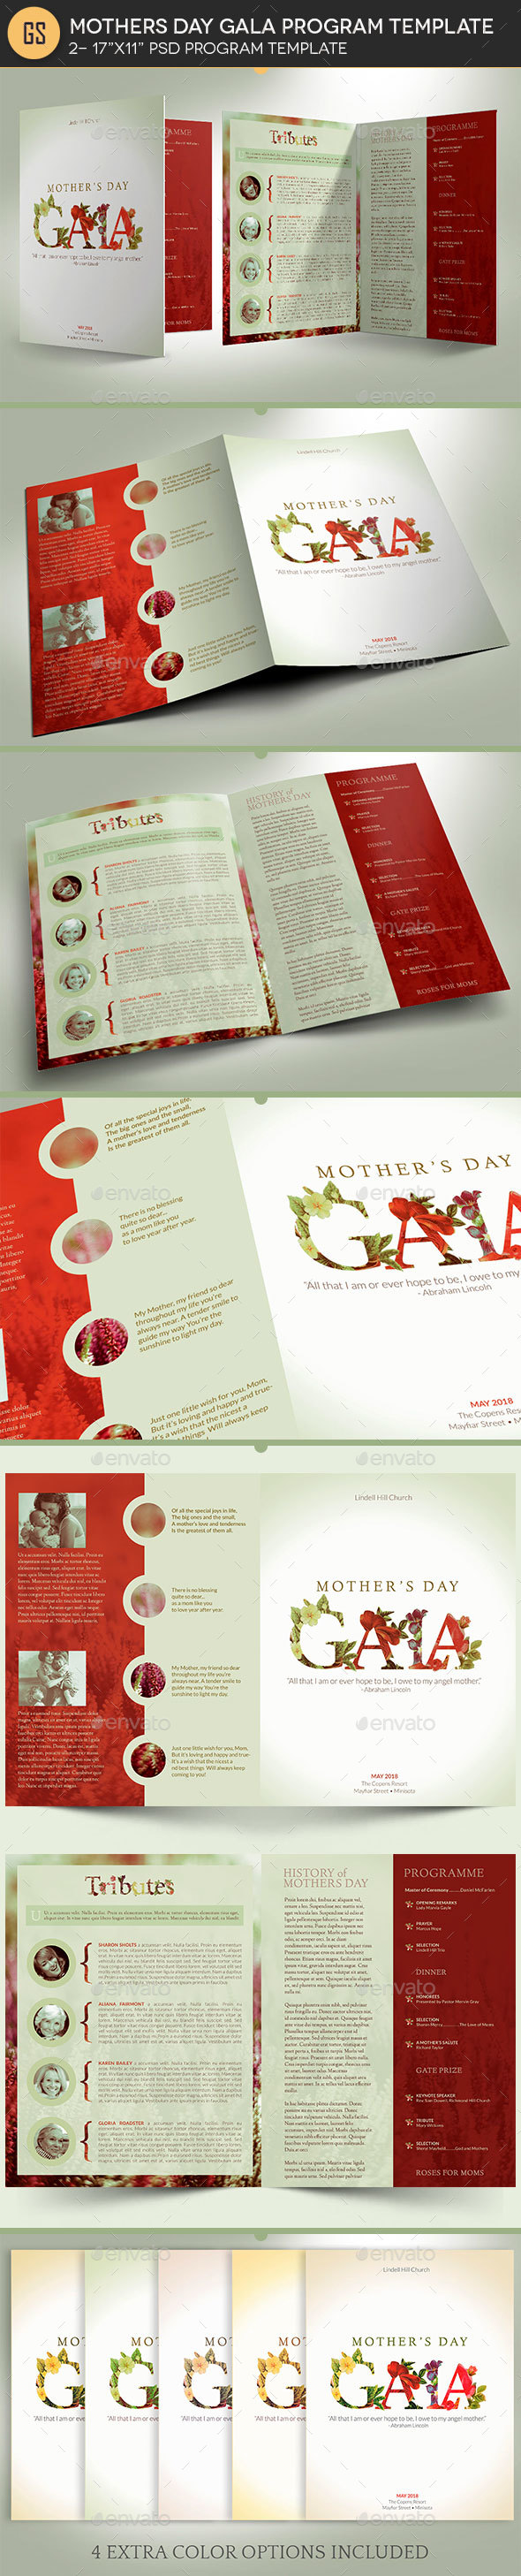 Mothers Gala Program Template - Informational Brochures